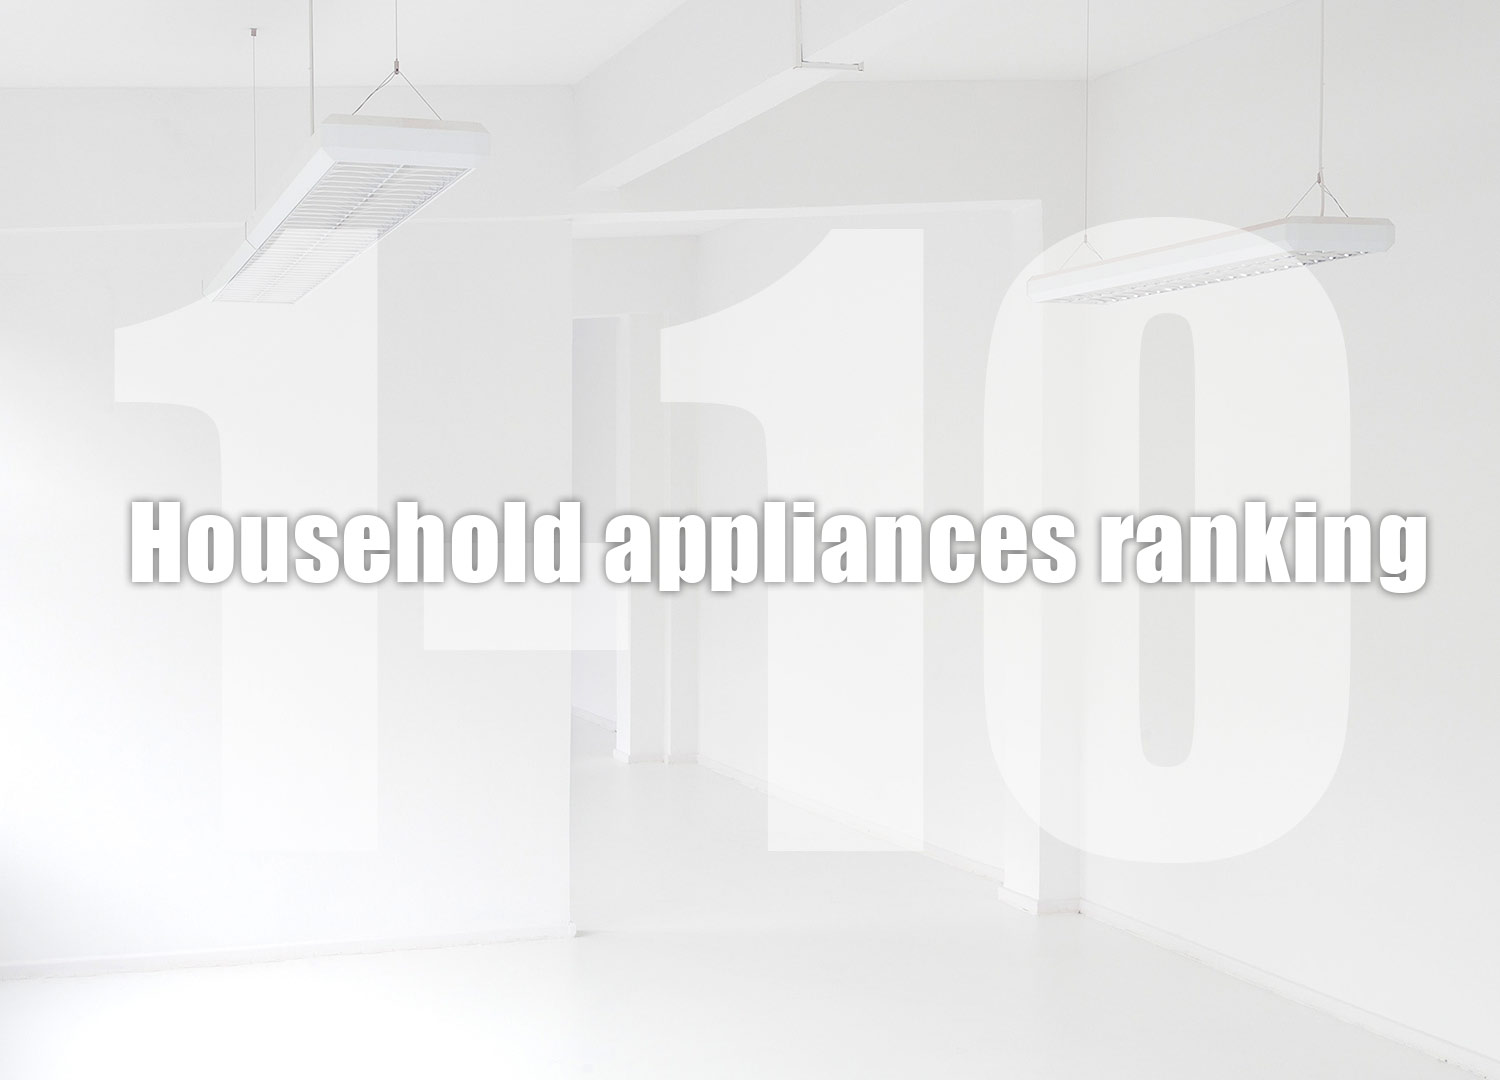 household-appliances-ranking-3